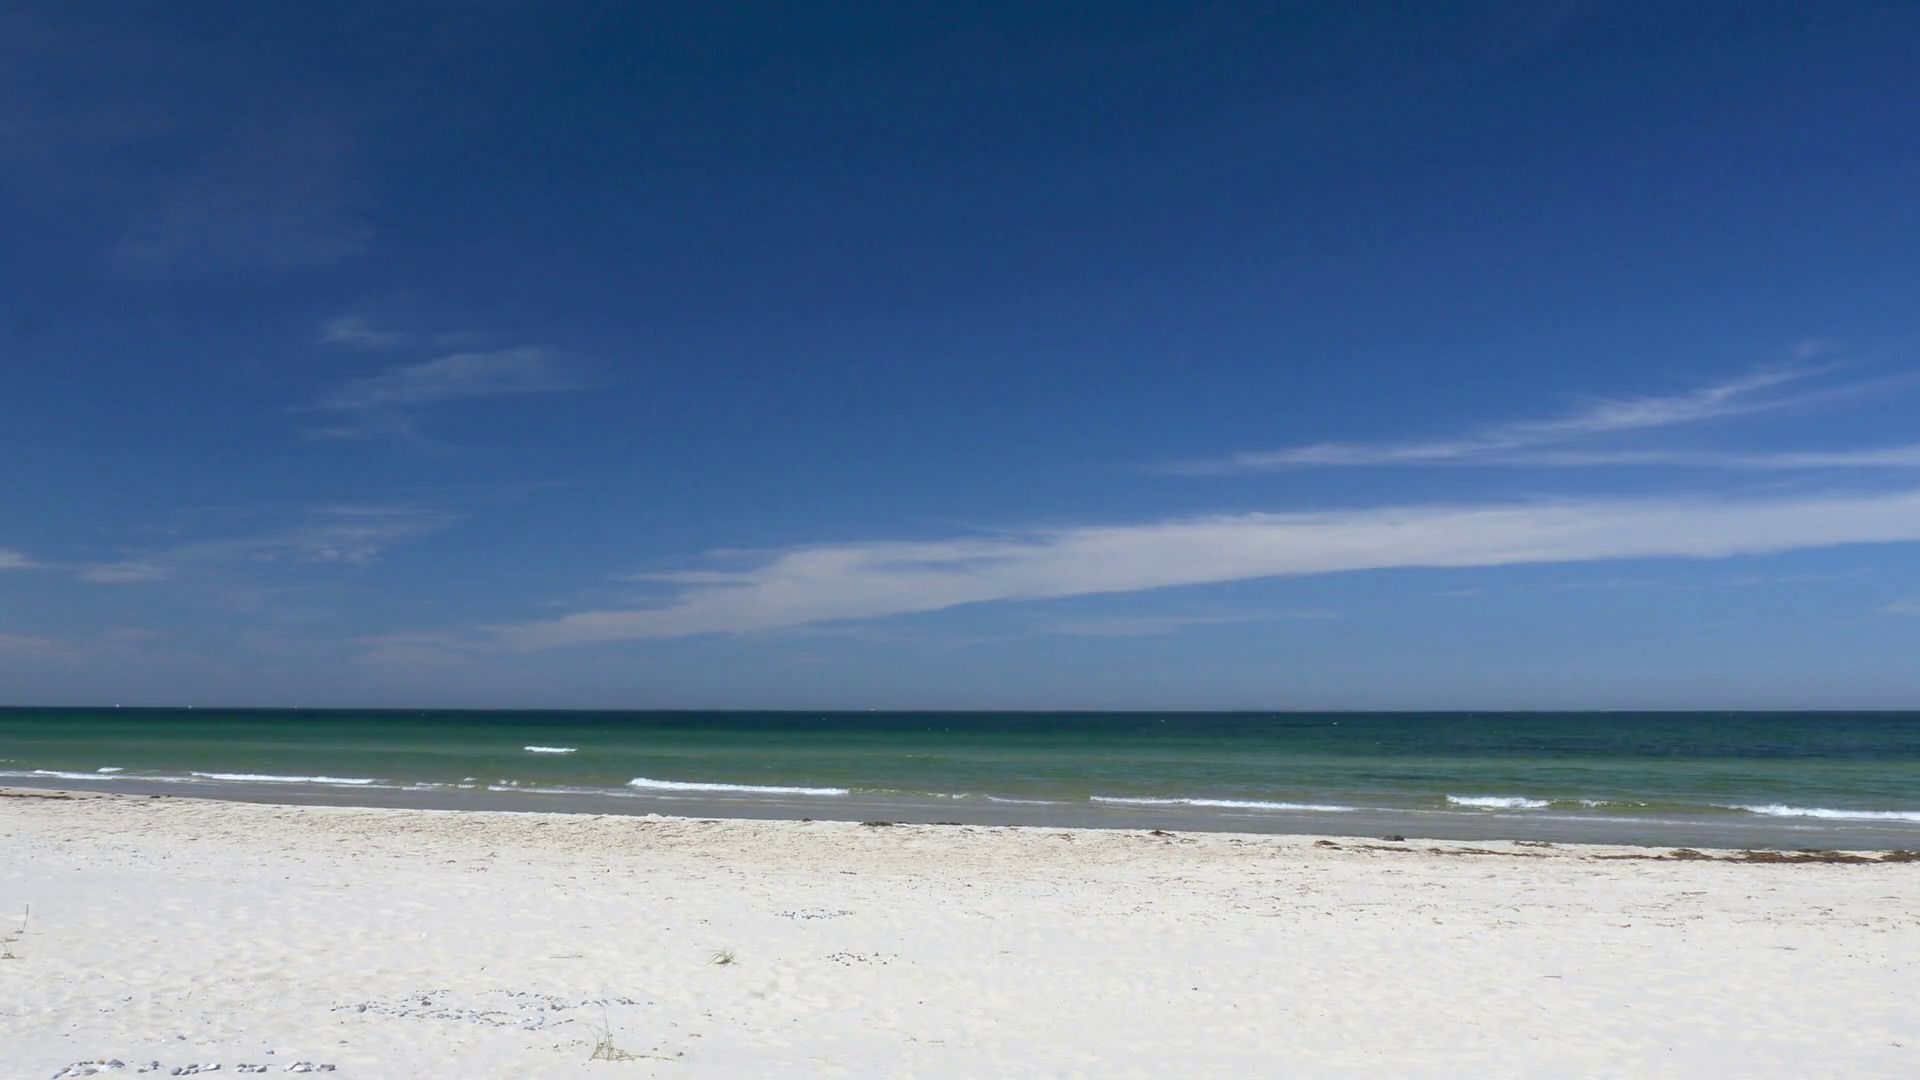 Beach scene without people. Peaceful and relaxing. White sand and ...